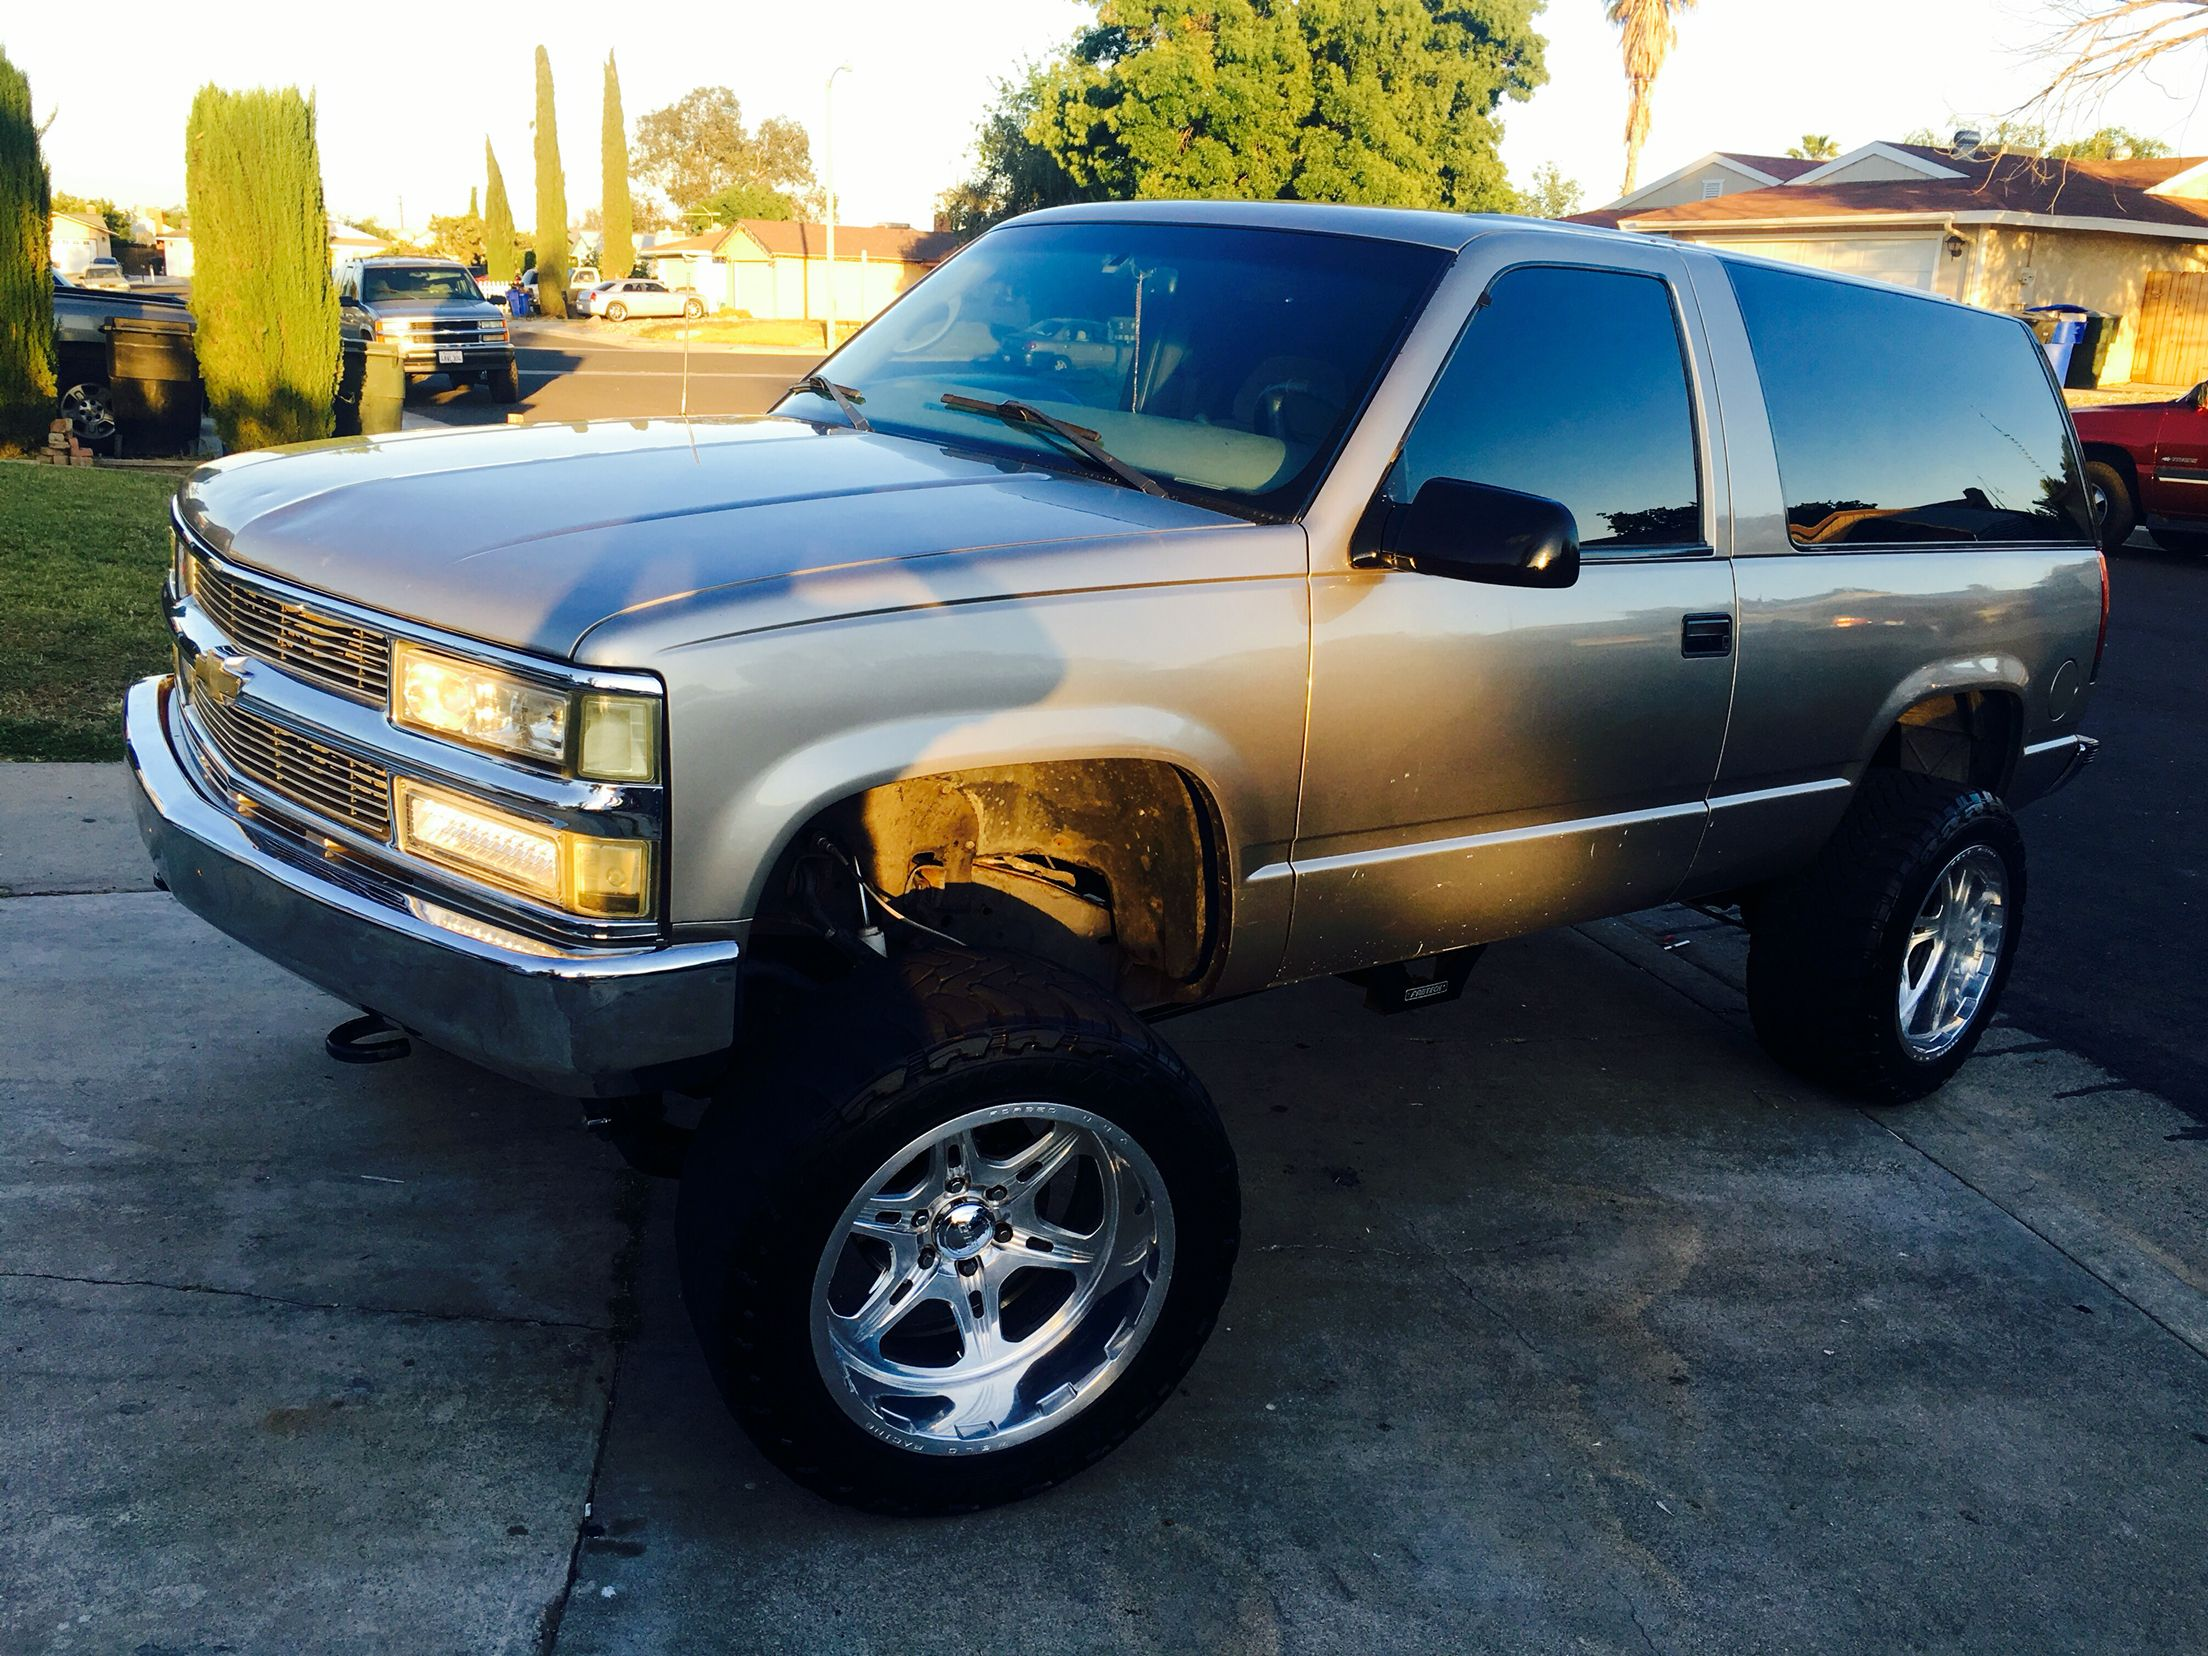 Lifted 2 Door Tahoe 99 On 20x12 Welds Chevy Tahoe Chevrolet Trucks 2 Door Tahoe